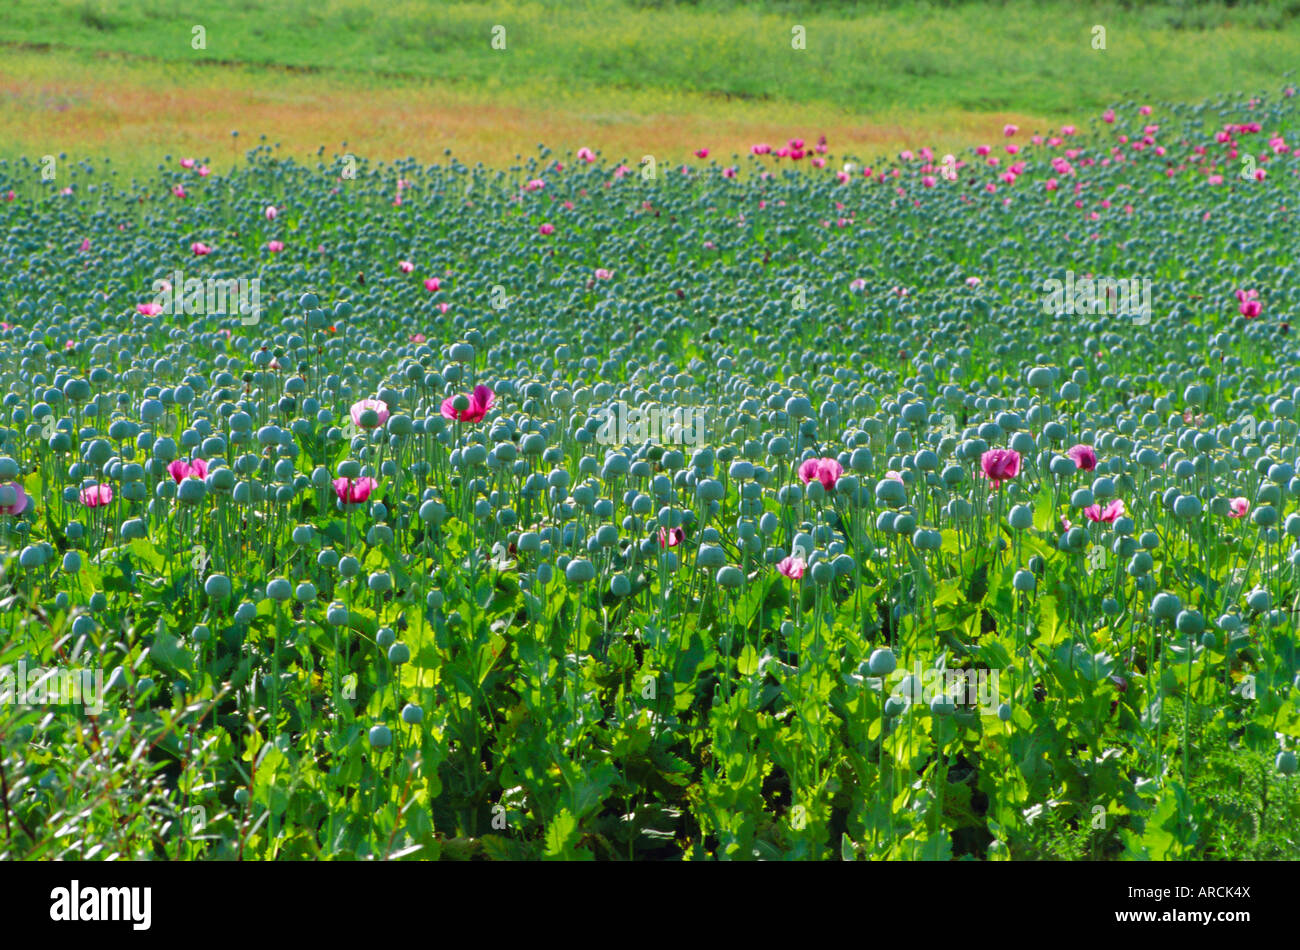 Opium Poppies are a legal crop for production of Morphine, Sandinski, Bulgaria - Stock Image